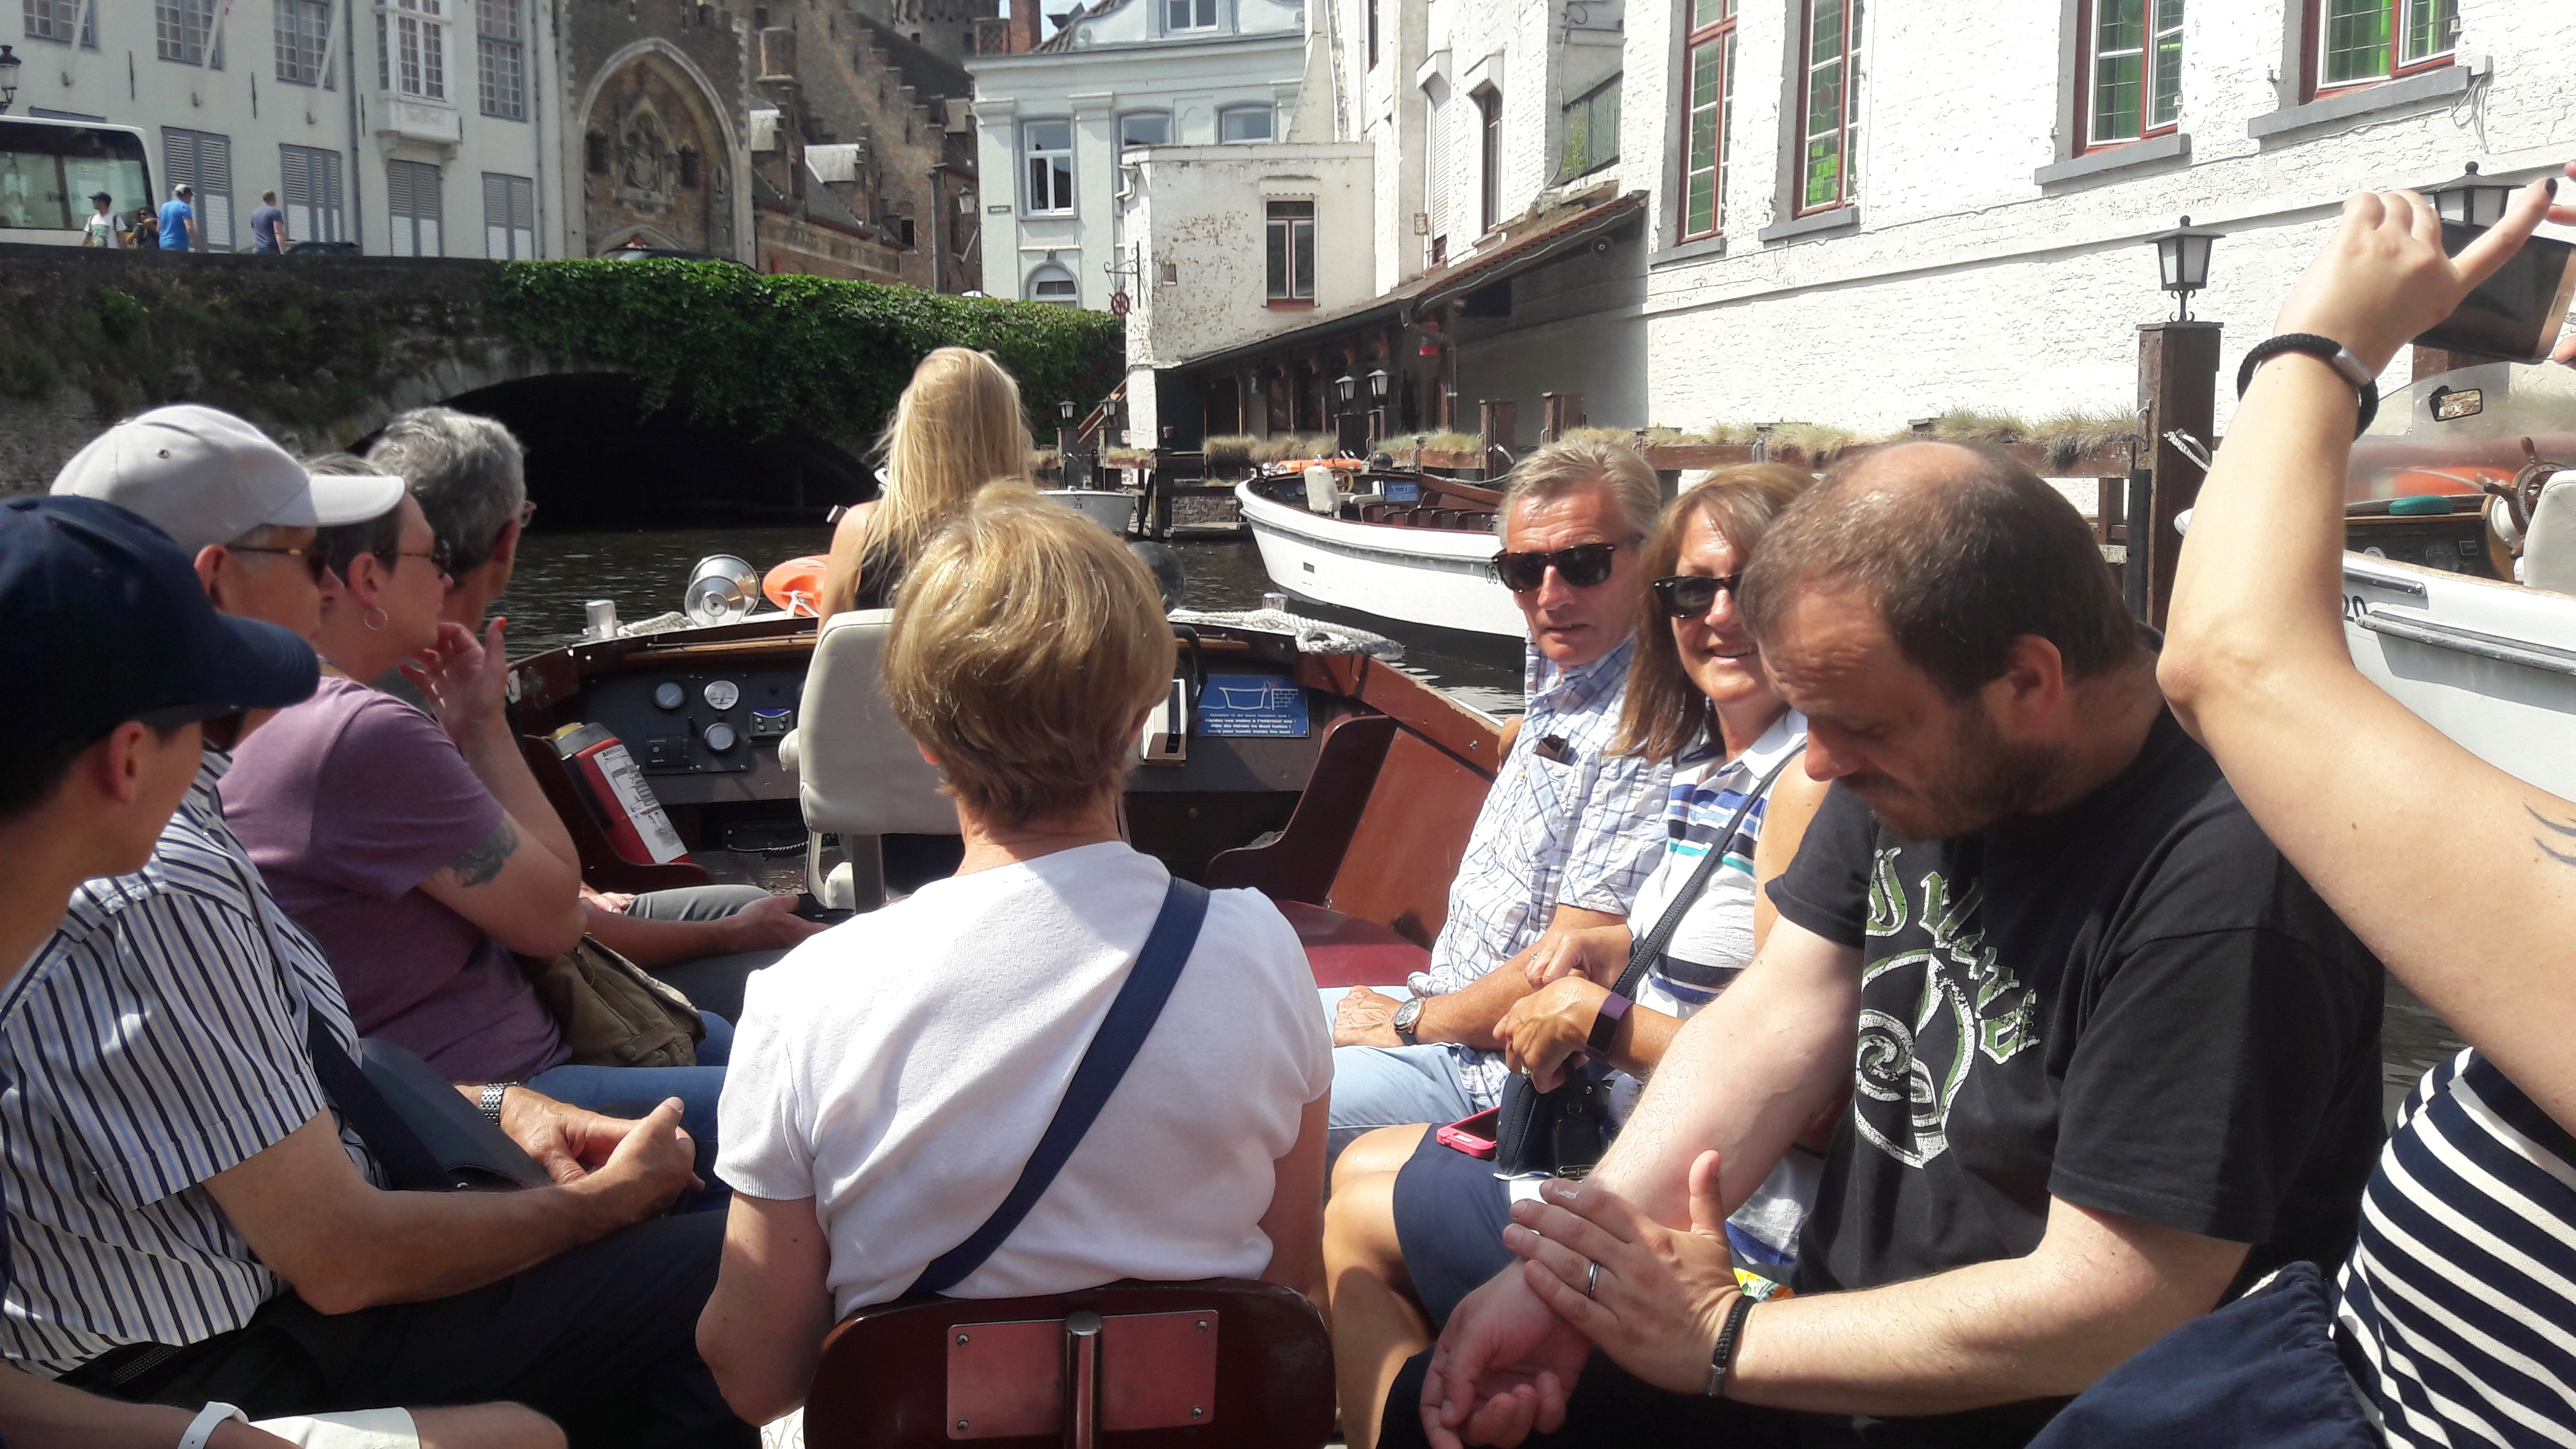 On the boat at Bruges